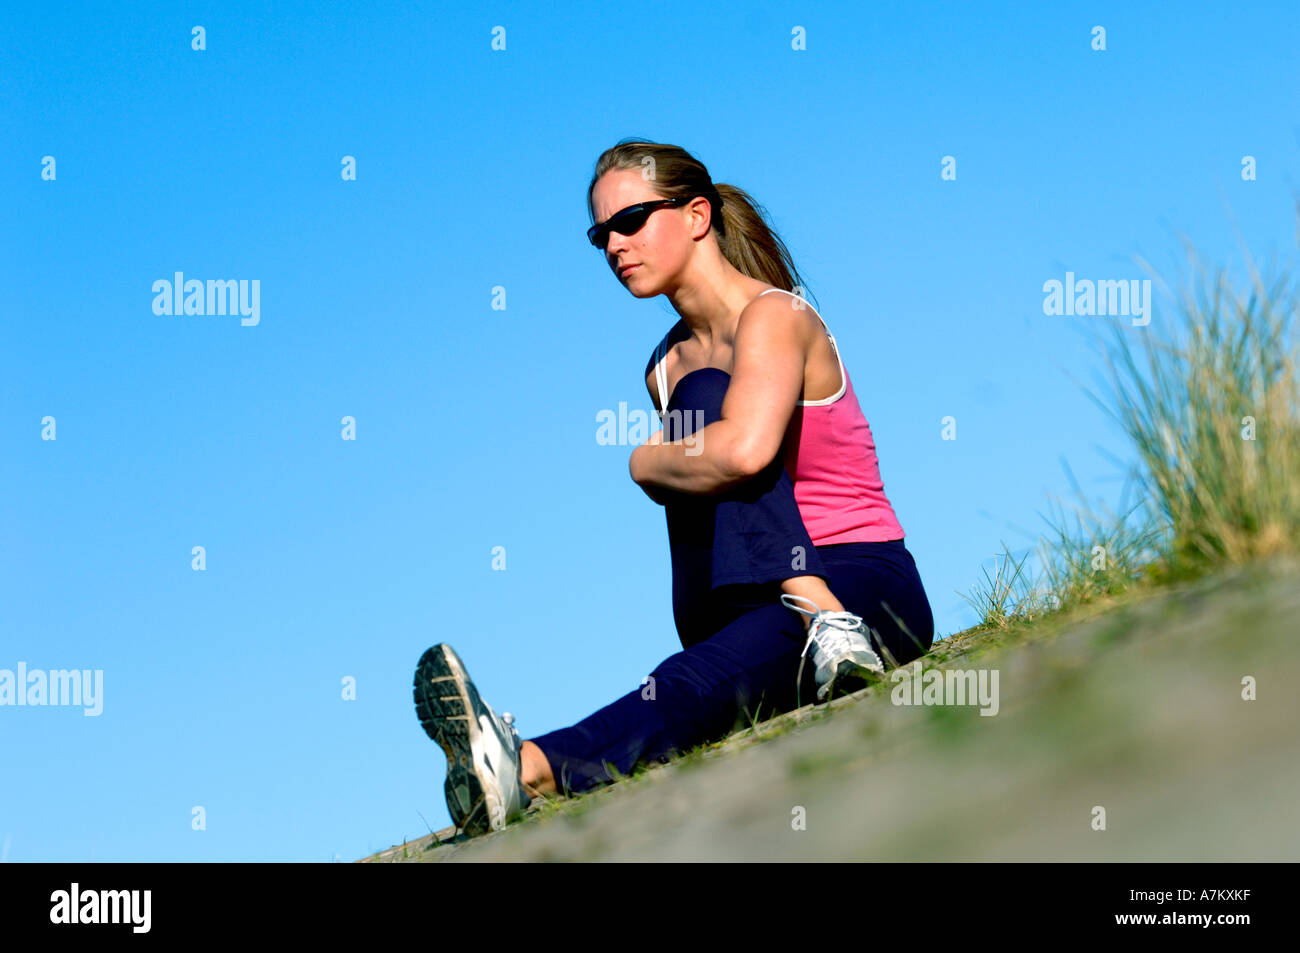 Healthy young woman stretches before workout in sunshine - Stock Image